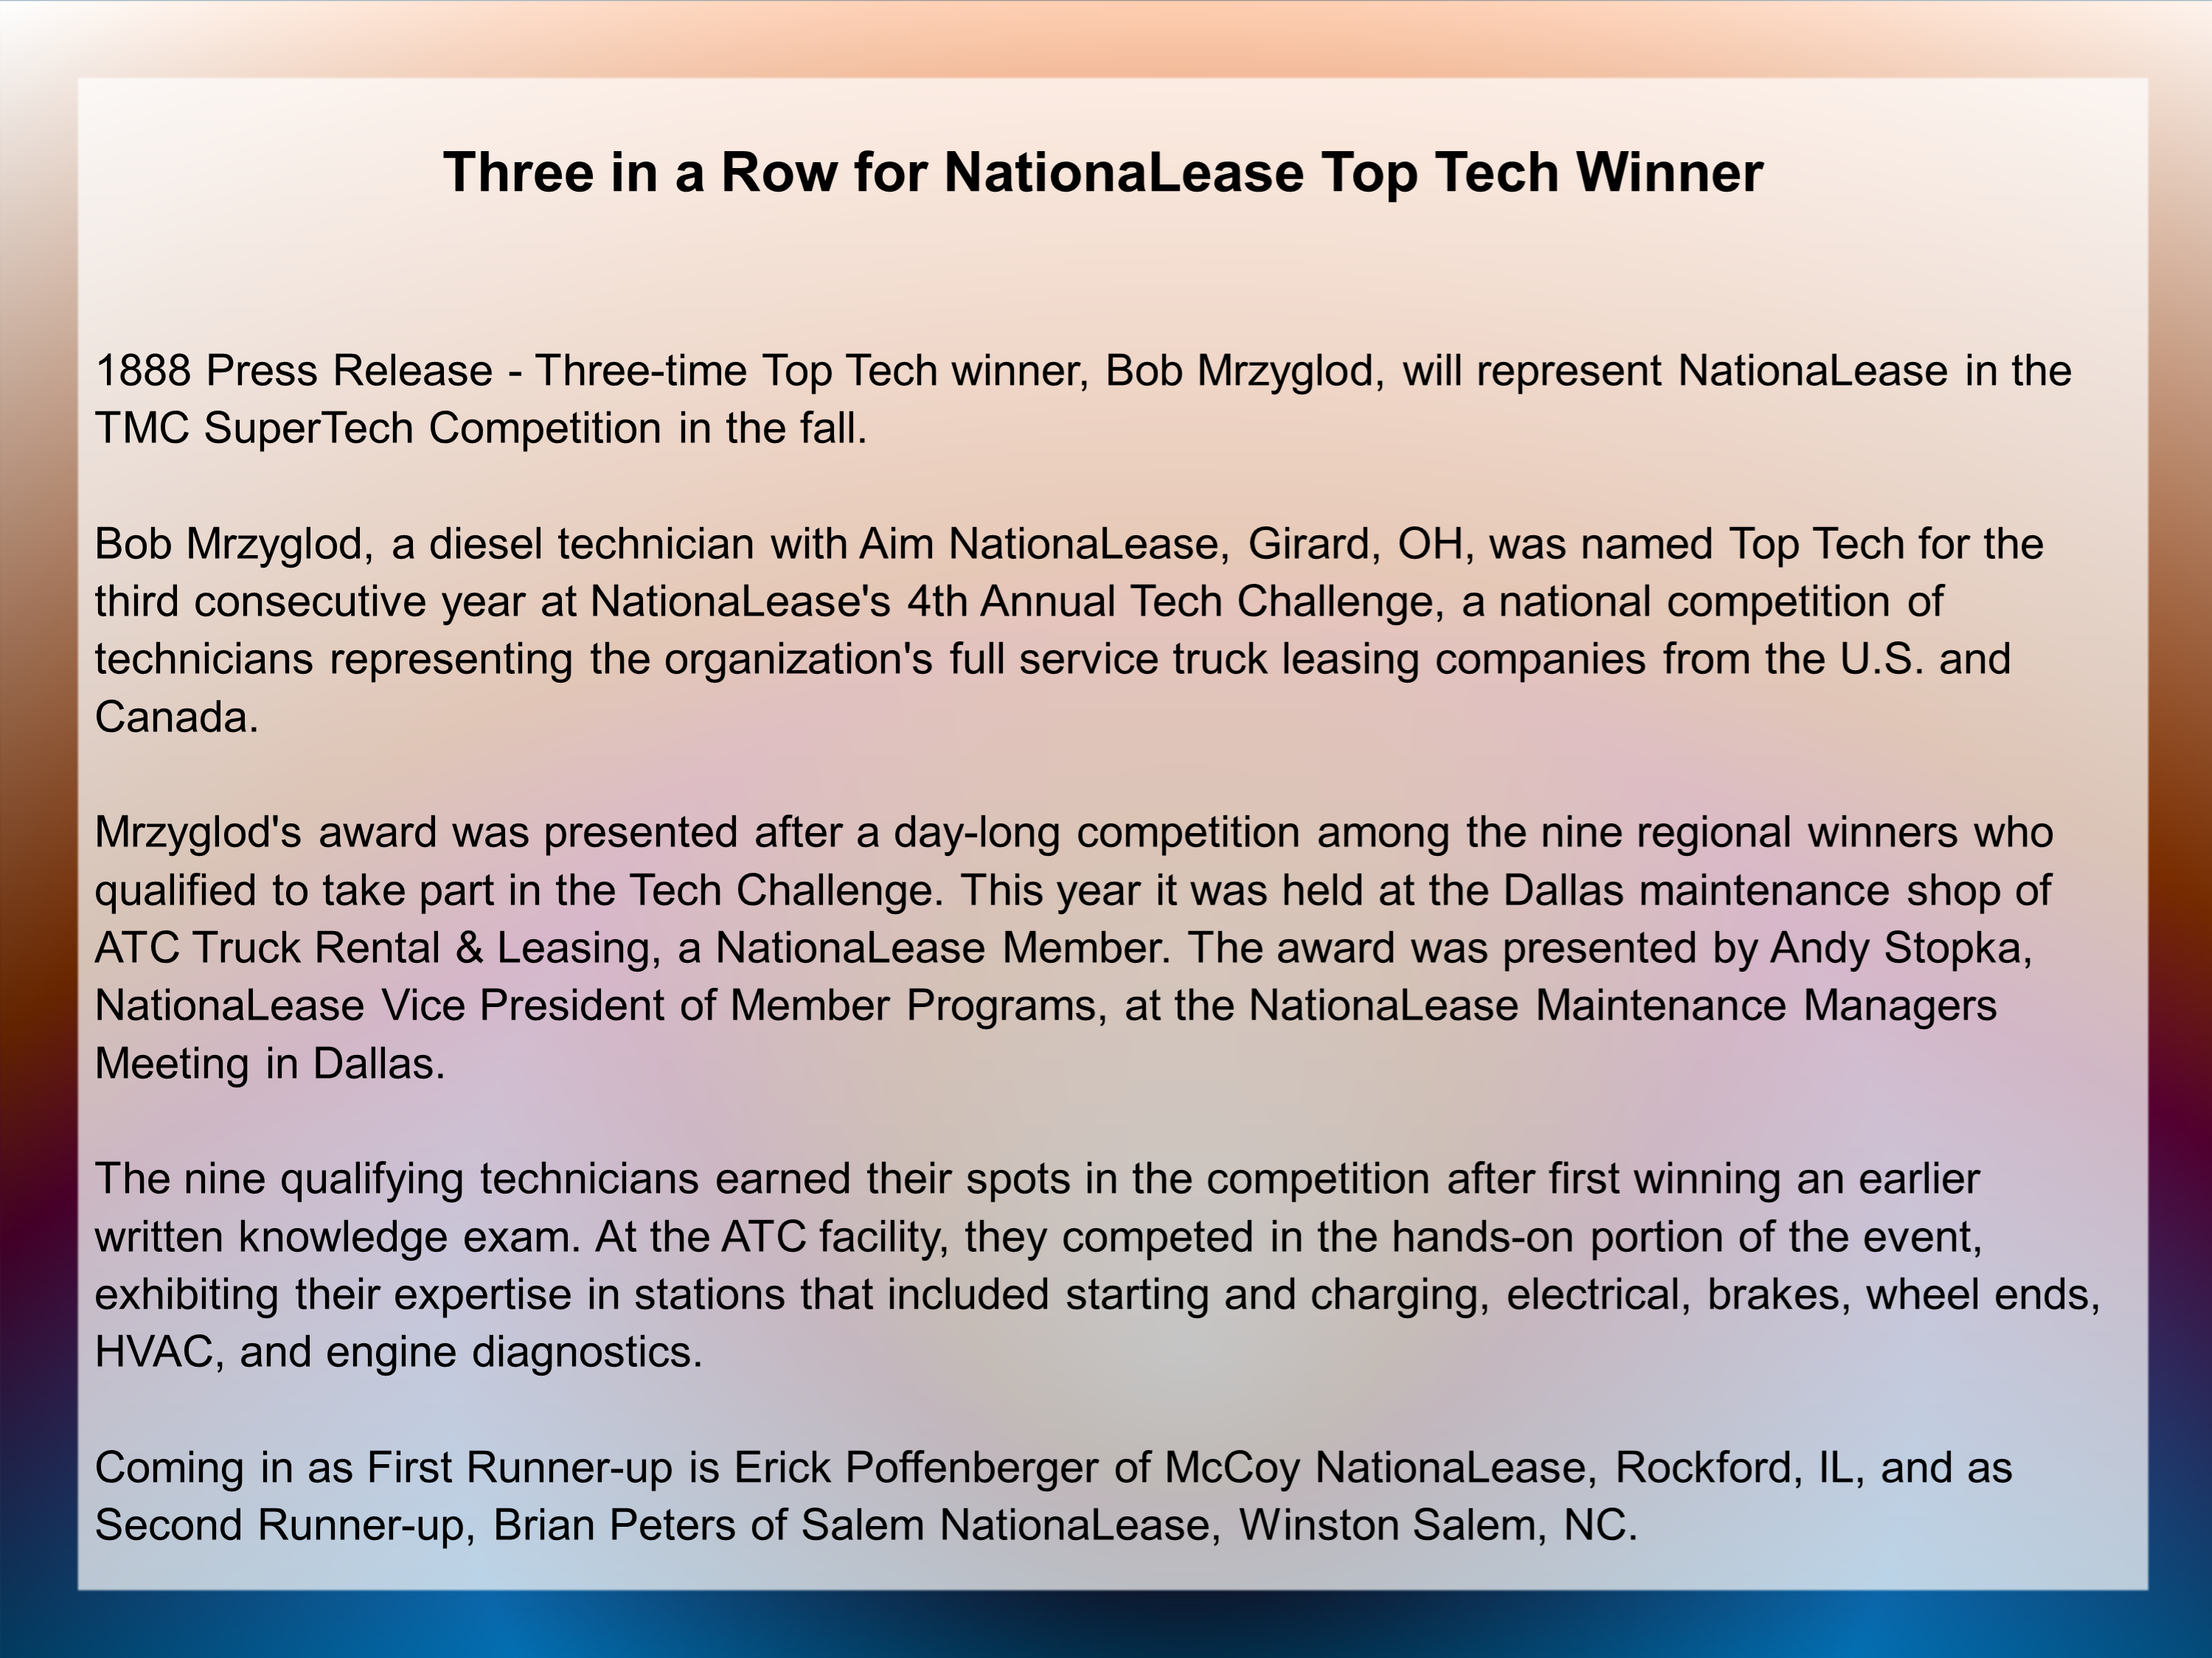 three in a row for nationalease 1888pressrelease - three-time top tech winner, bob mrzyglod, will represent nationalease in the tmc supertech competition in the fall bob mrzyglod, a diesel.